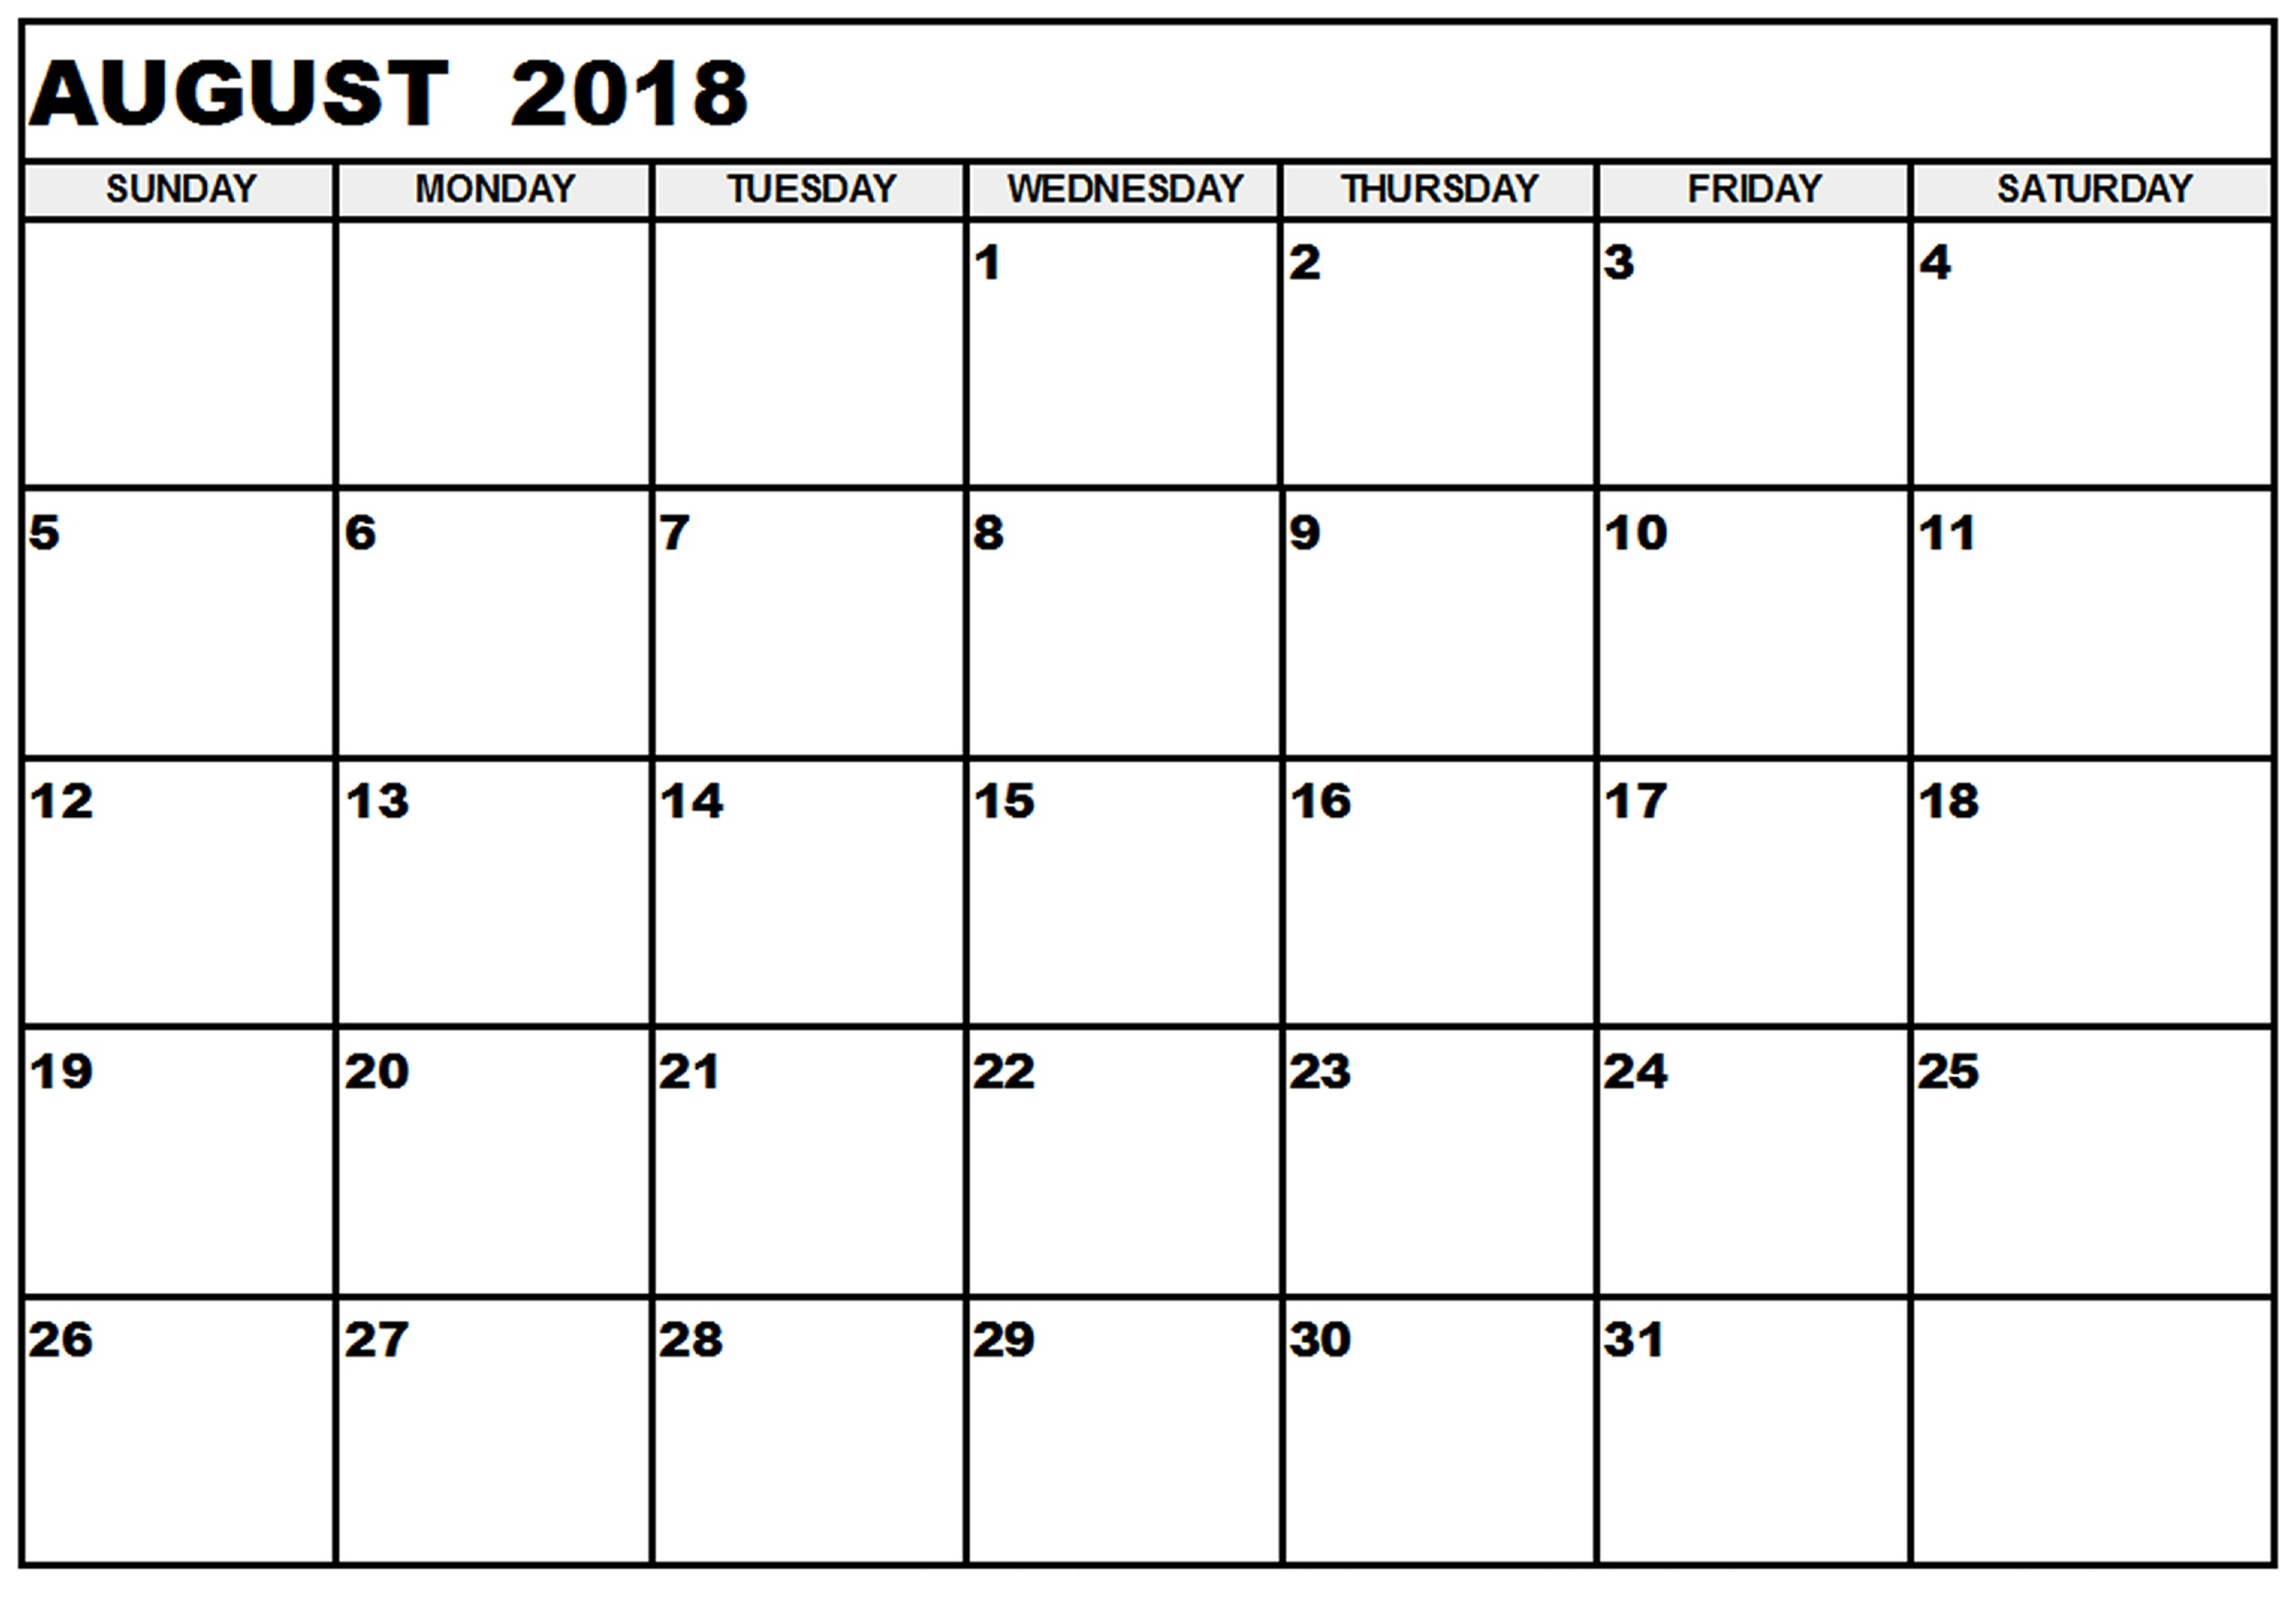 Monthly Calendar August 2018 Editable